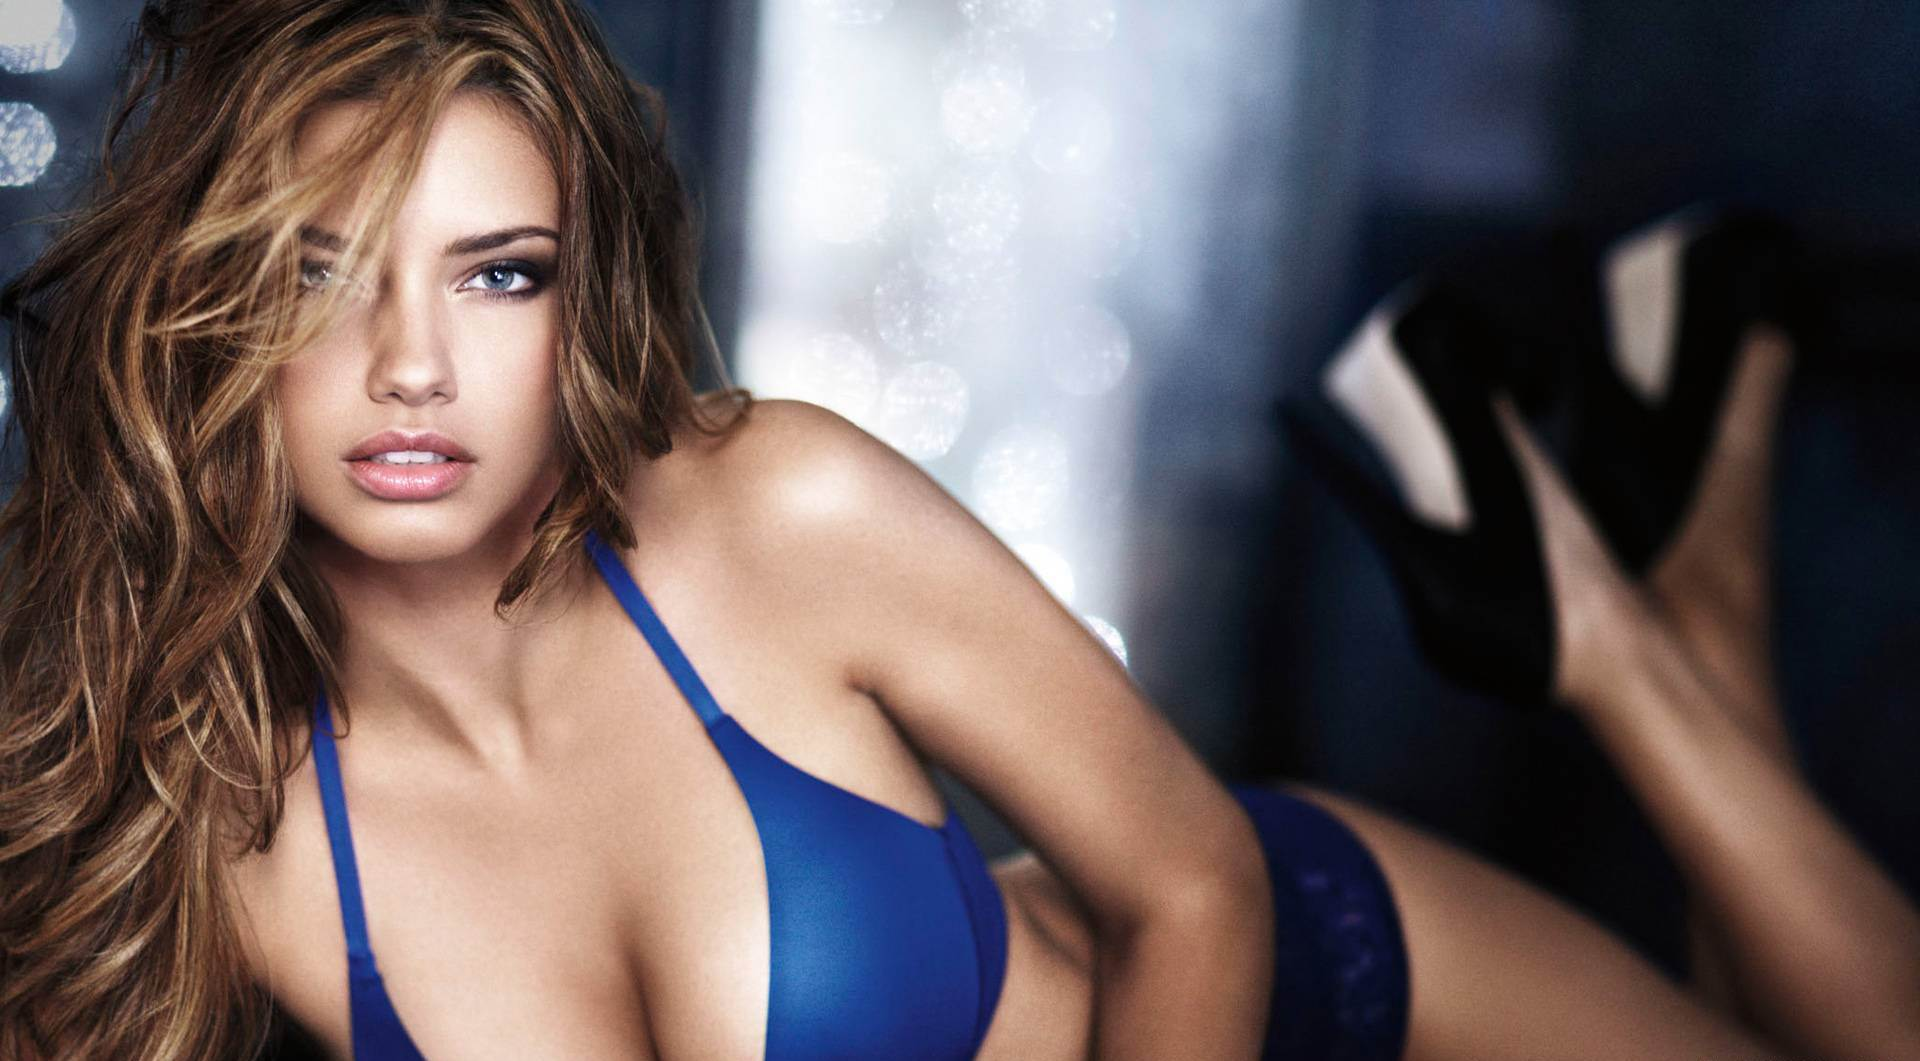 adriana-lima-hd-at-hd-desktop-picture-collections